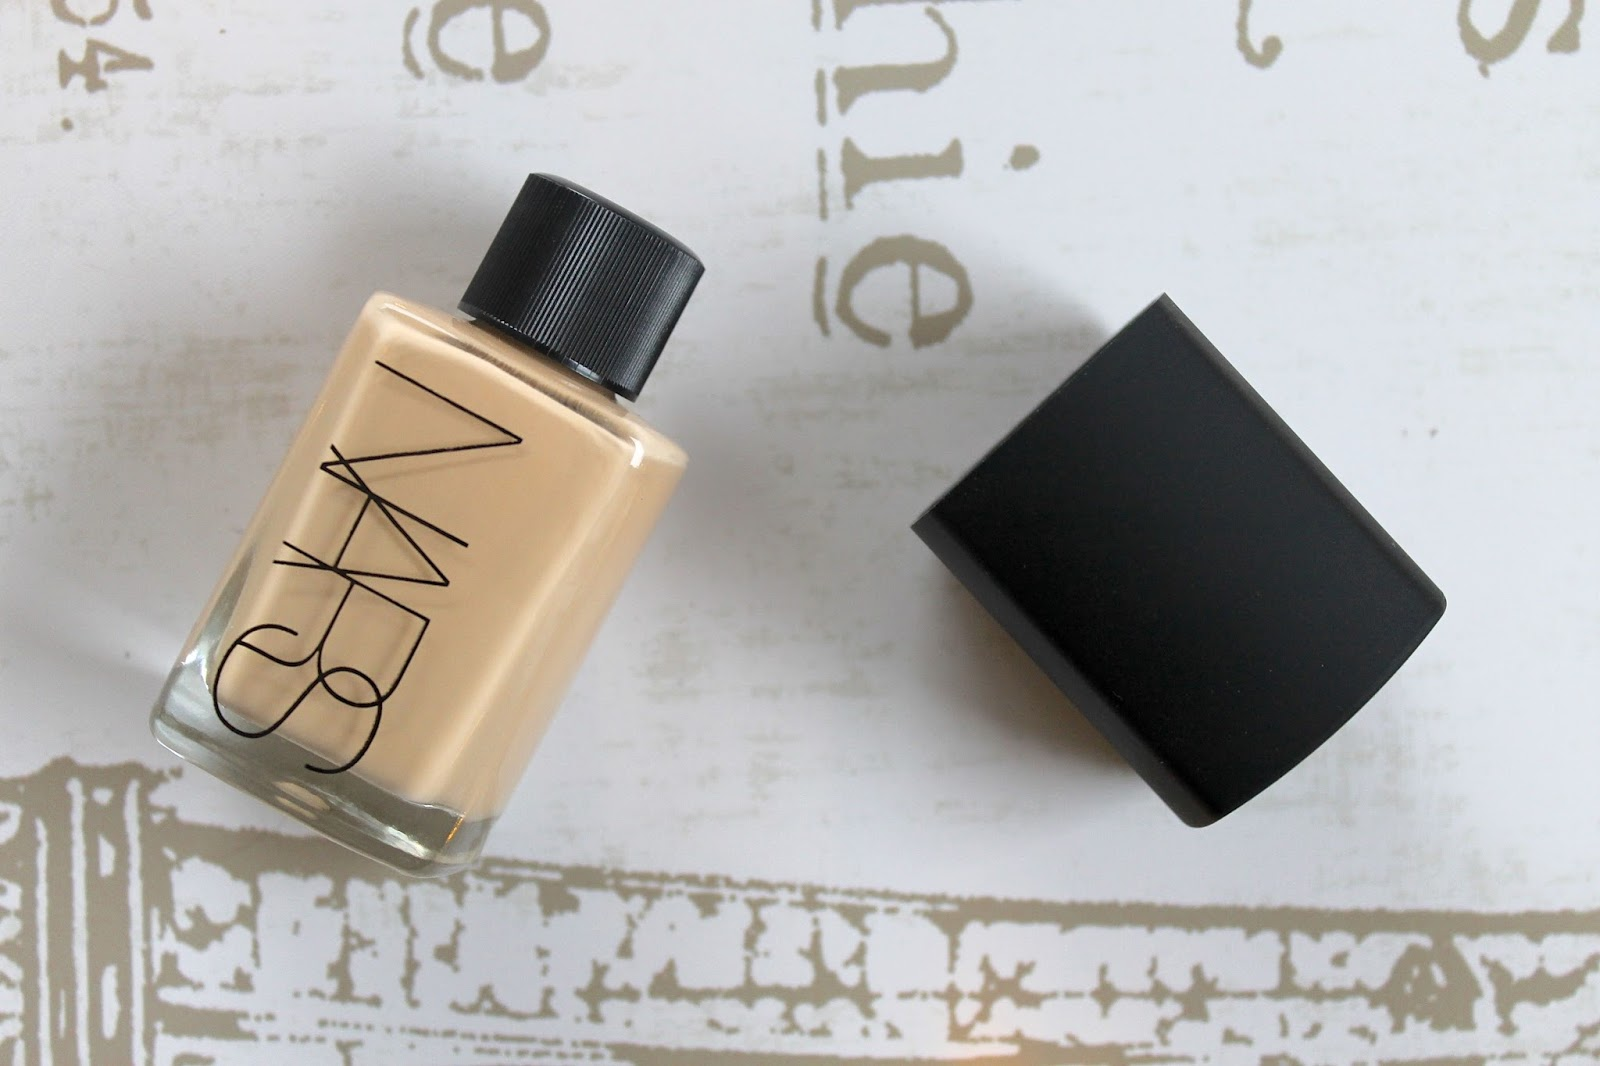 NARS Sheer Glow blog review